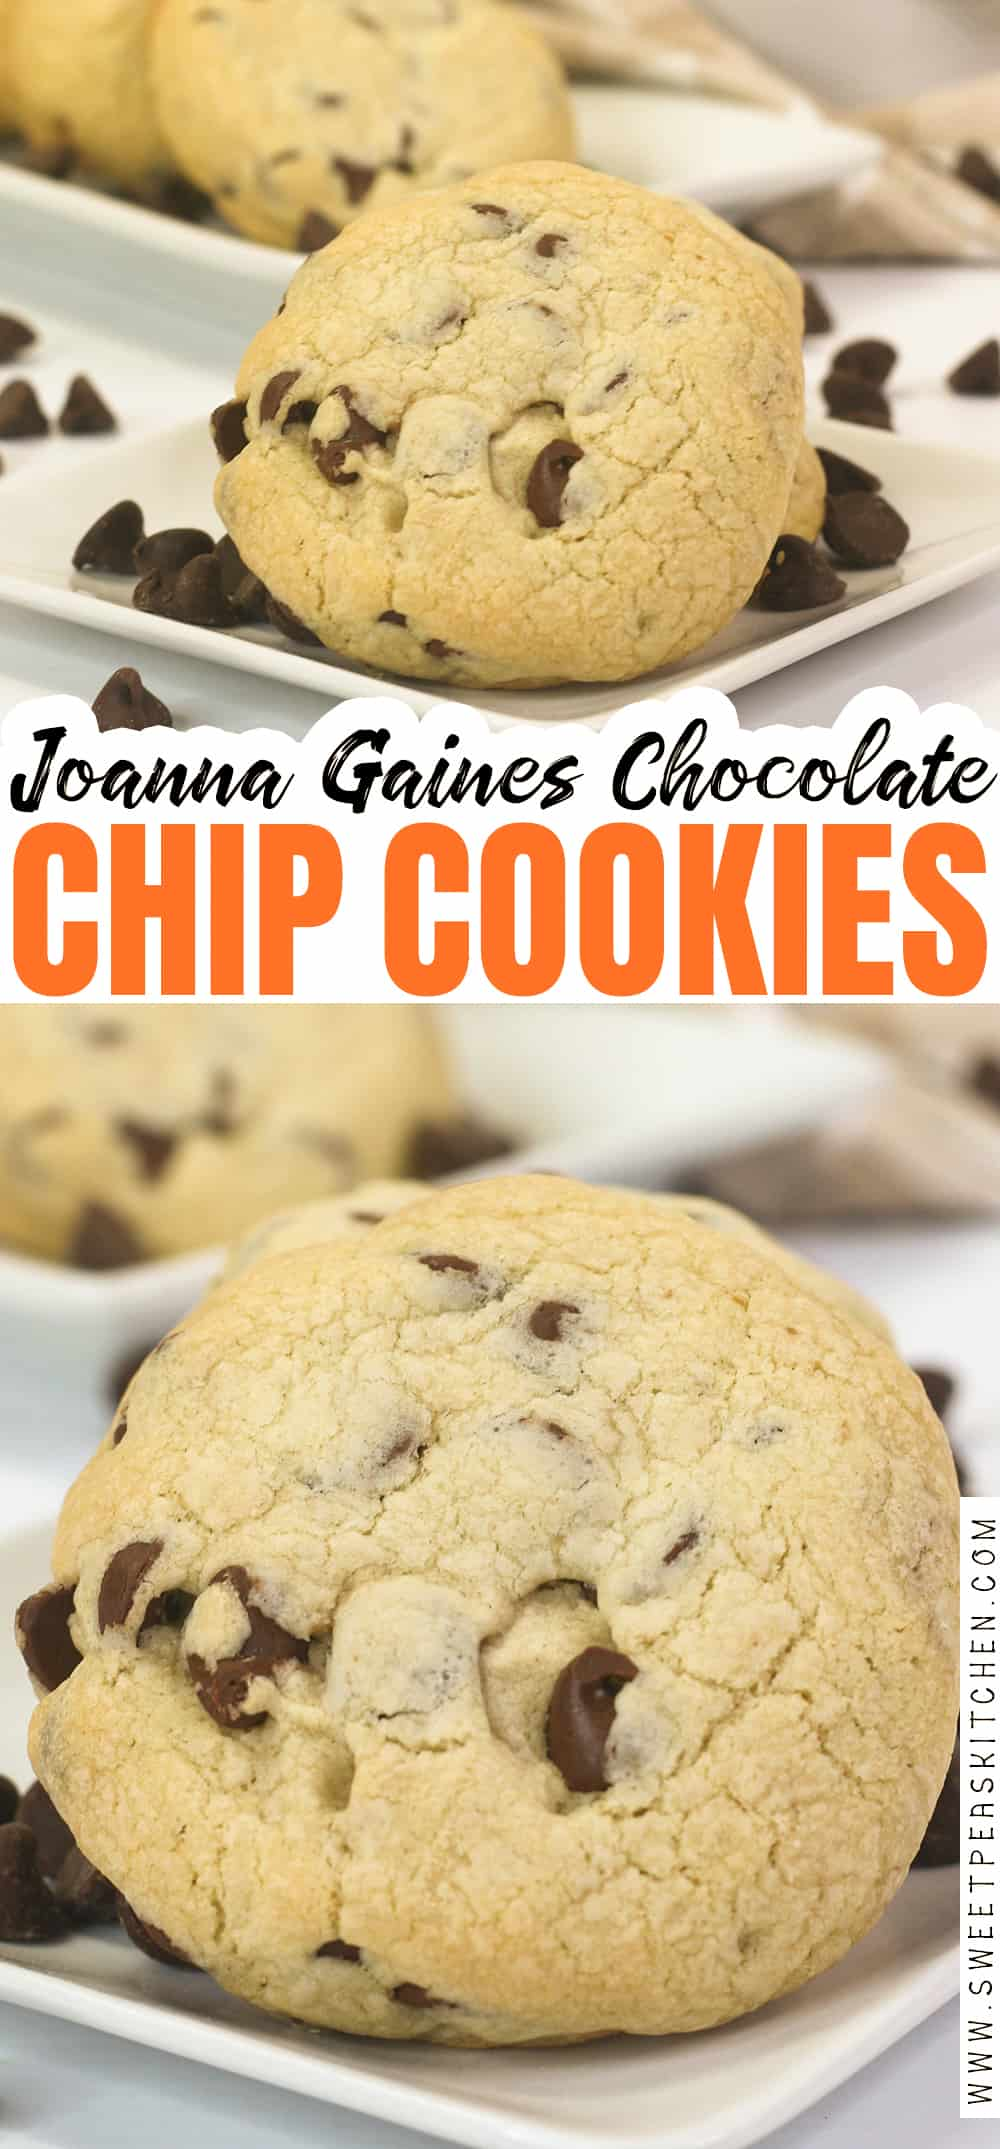 Joanna Gaines Chocolate Chip Cookies Recipe